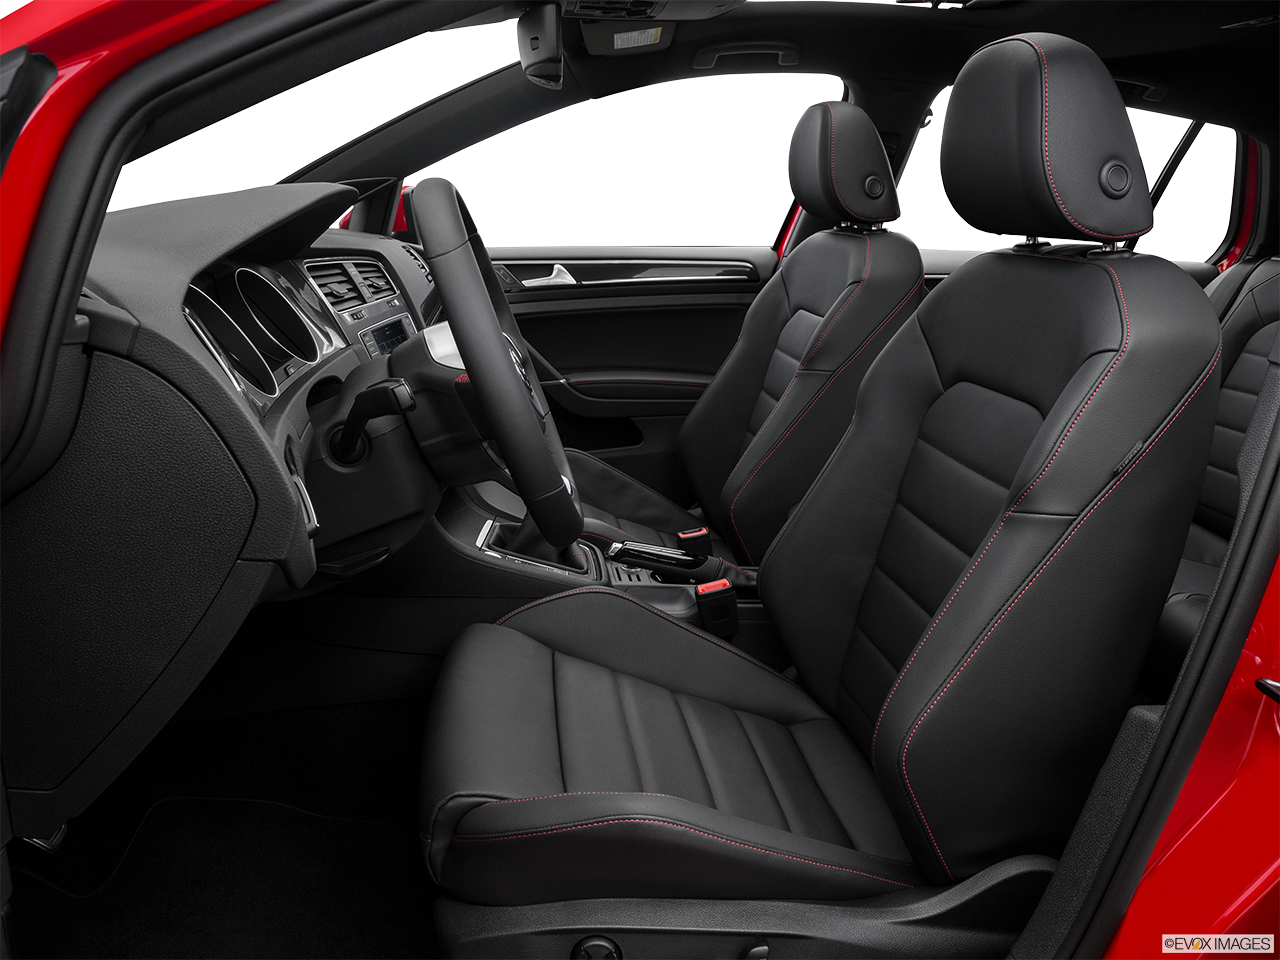 Research The 2016 Volkswagen Golf GTI in Moreno Valley